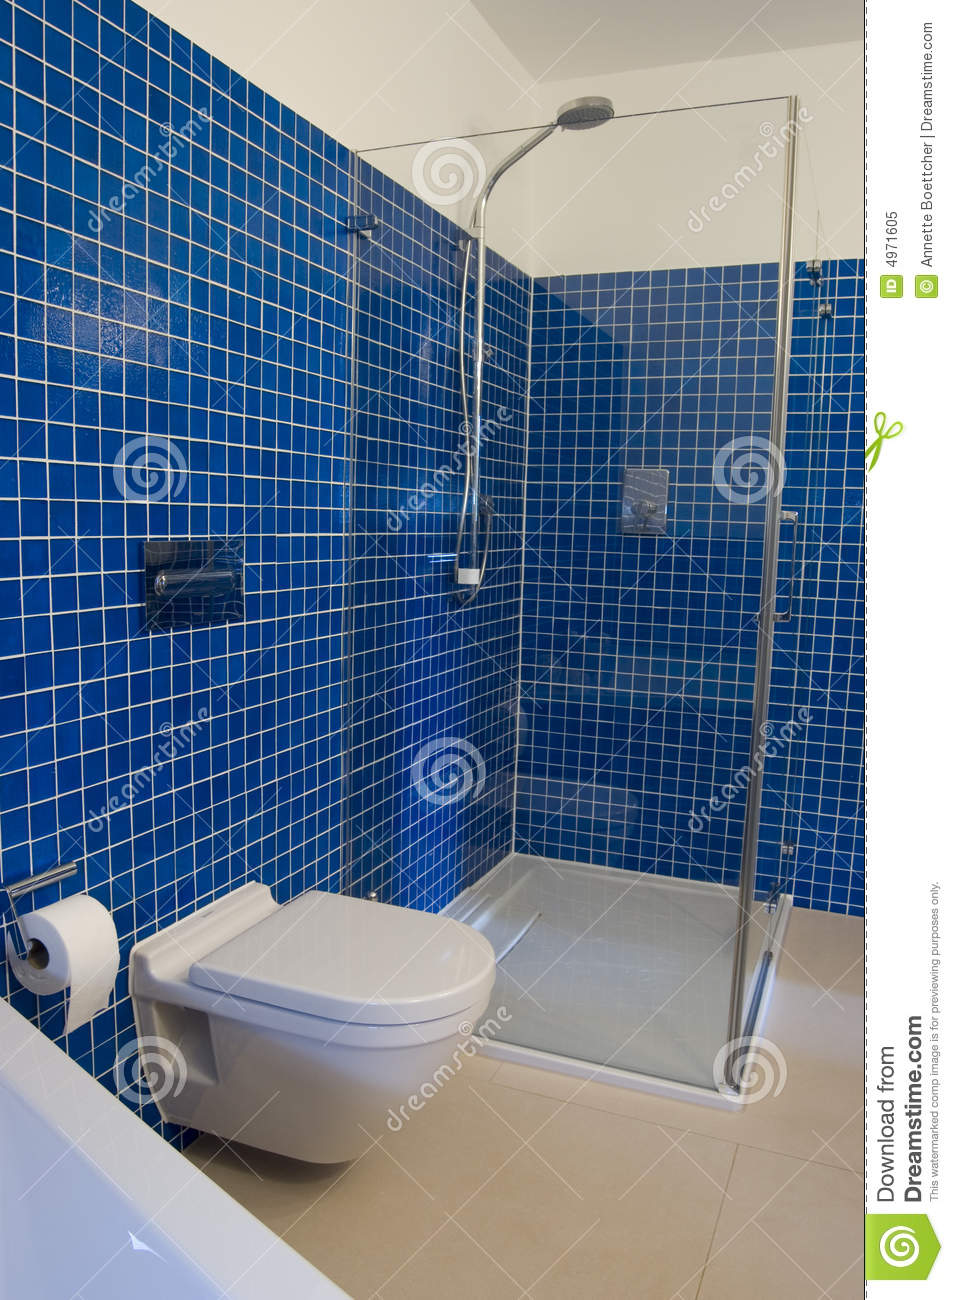 Baños Azules Modernos:Modern Blue Bathroom with Tile